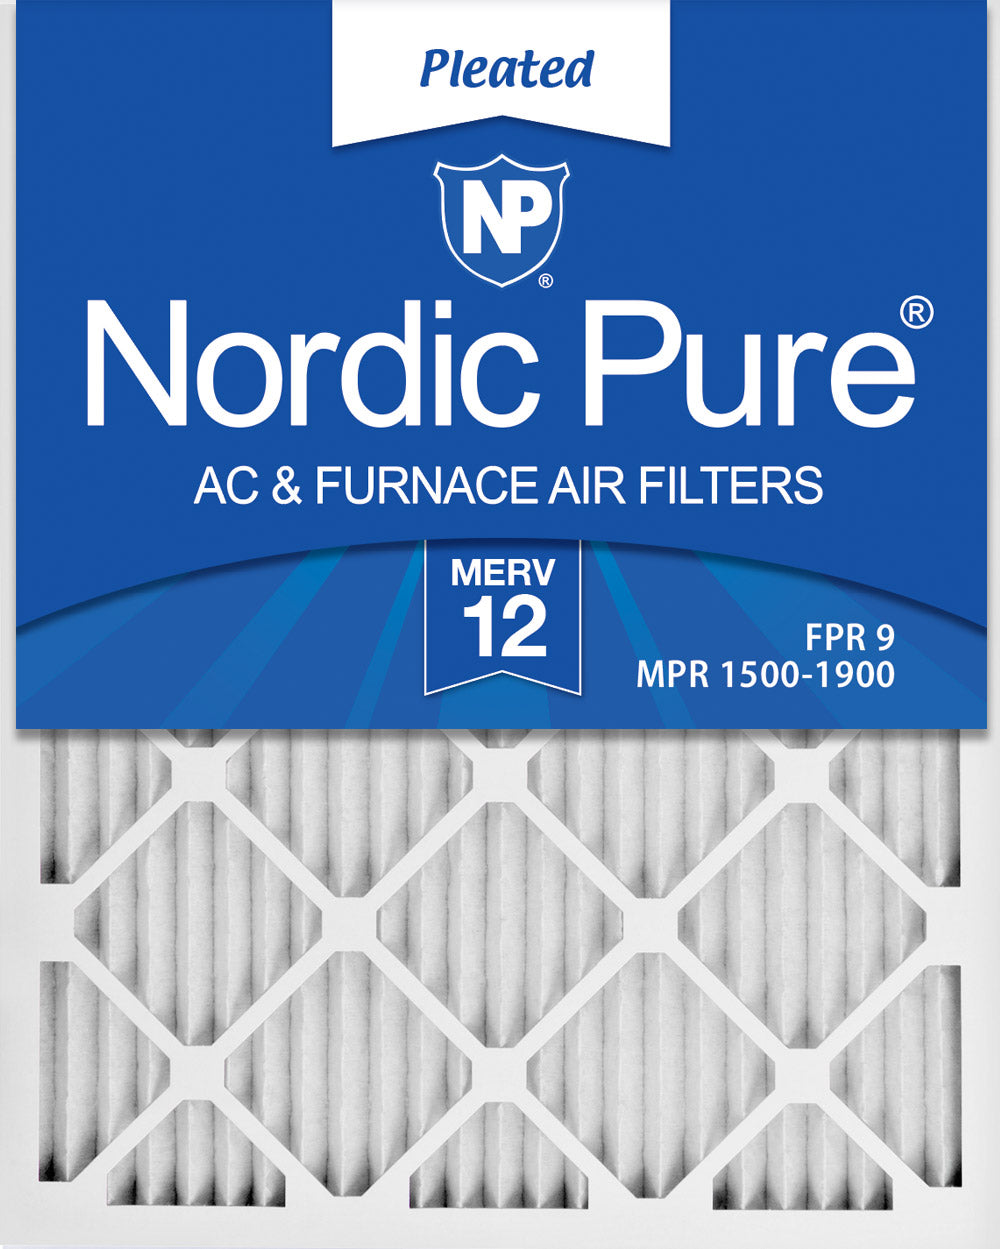 20x25x1 Pleated MERV 12 Air Filters 6 Pack